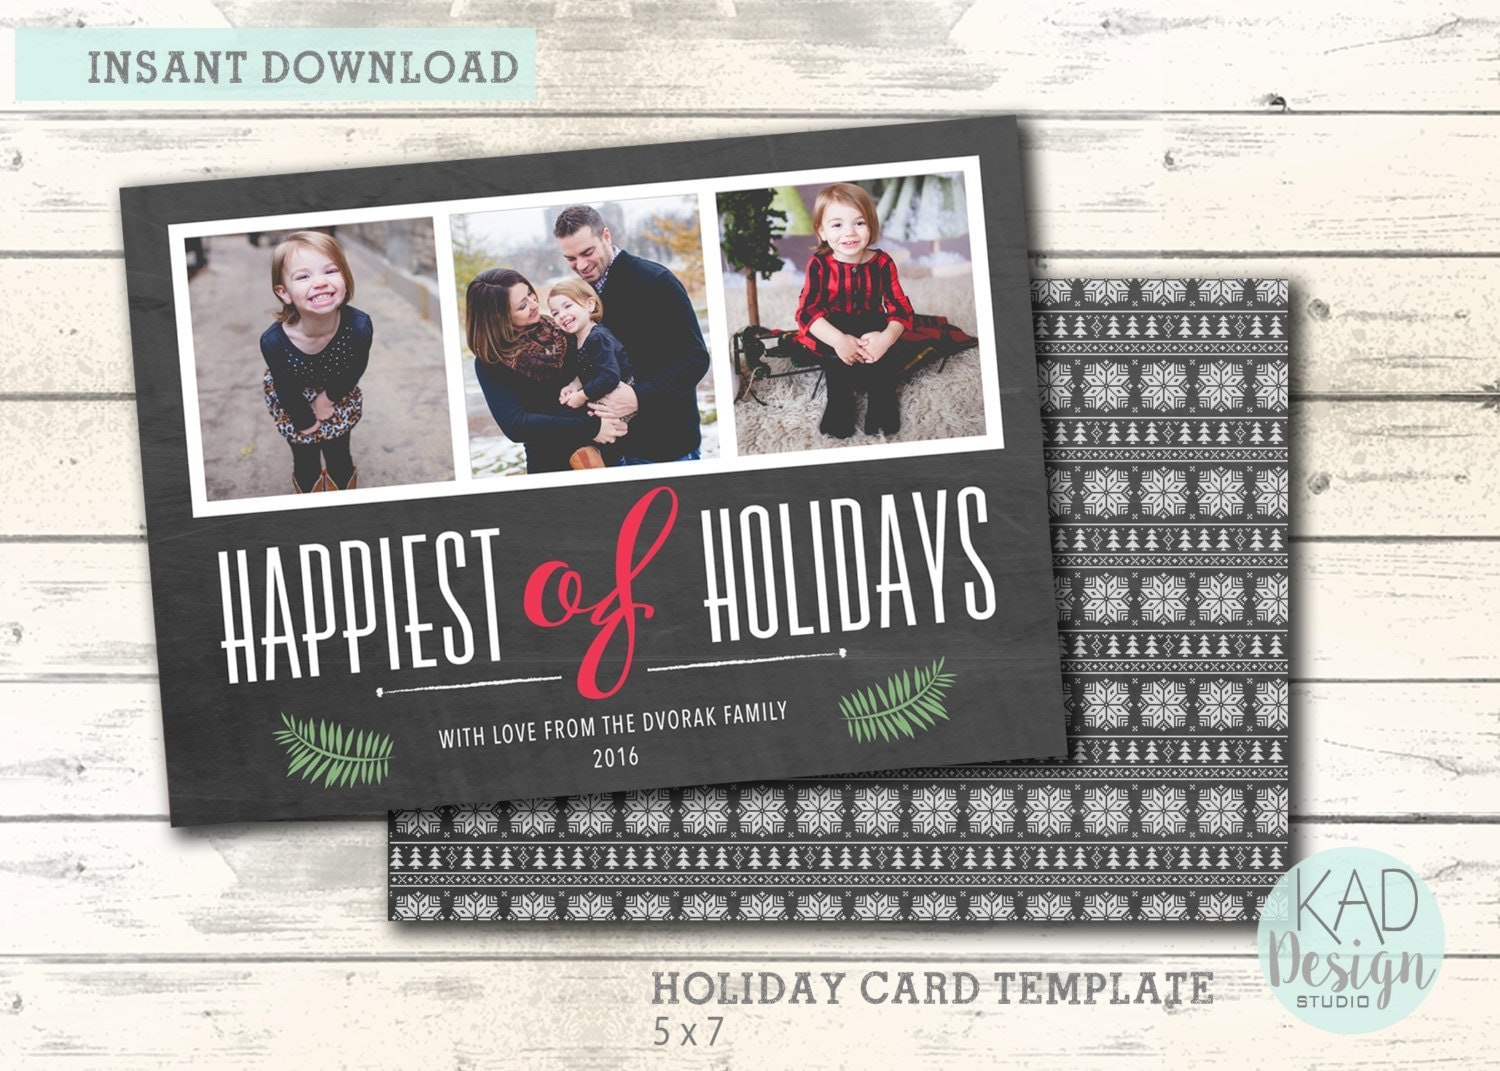 Christmas card template holiday card template christmas template christmas card template holiday card template christmas template photoshop template photographer maxwellsz